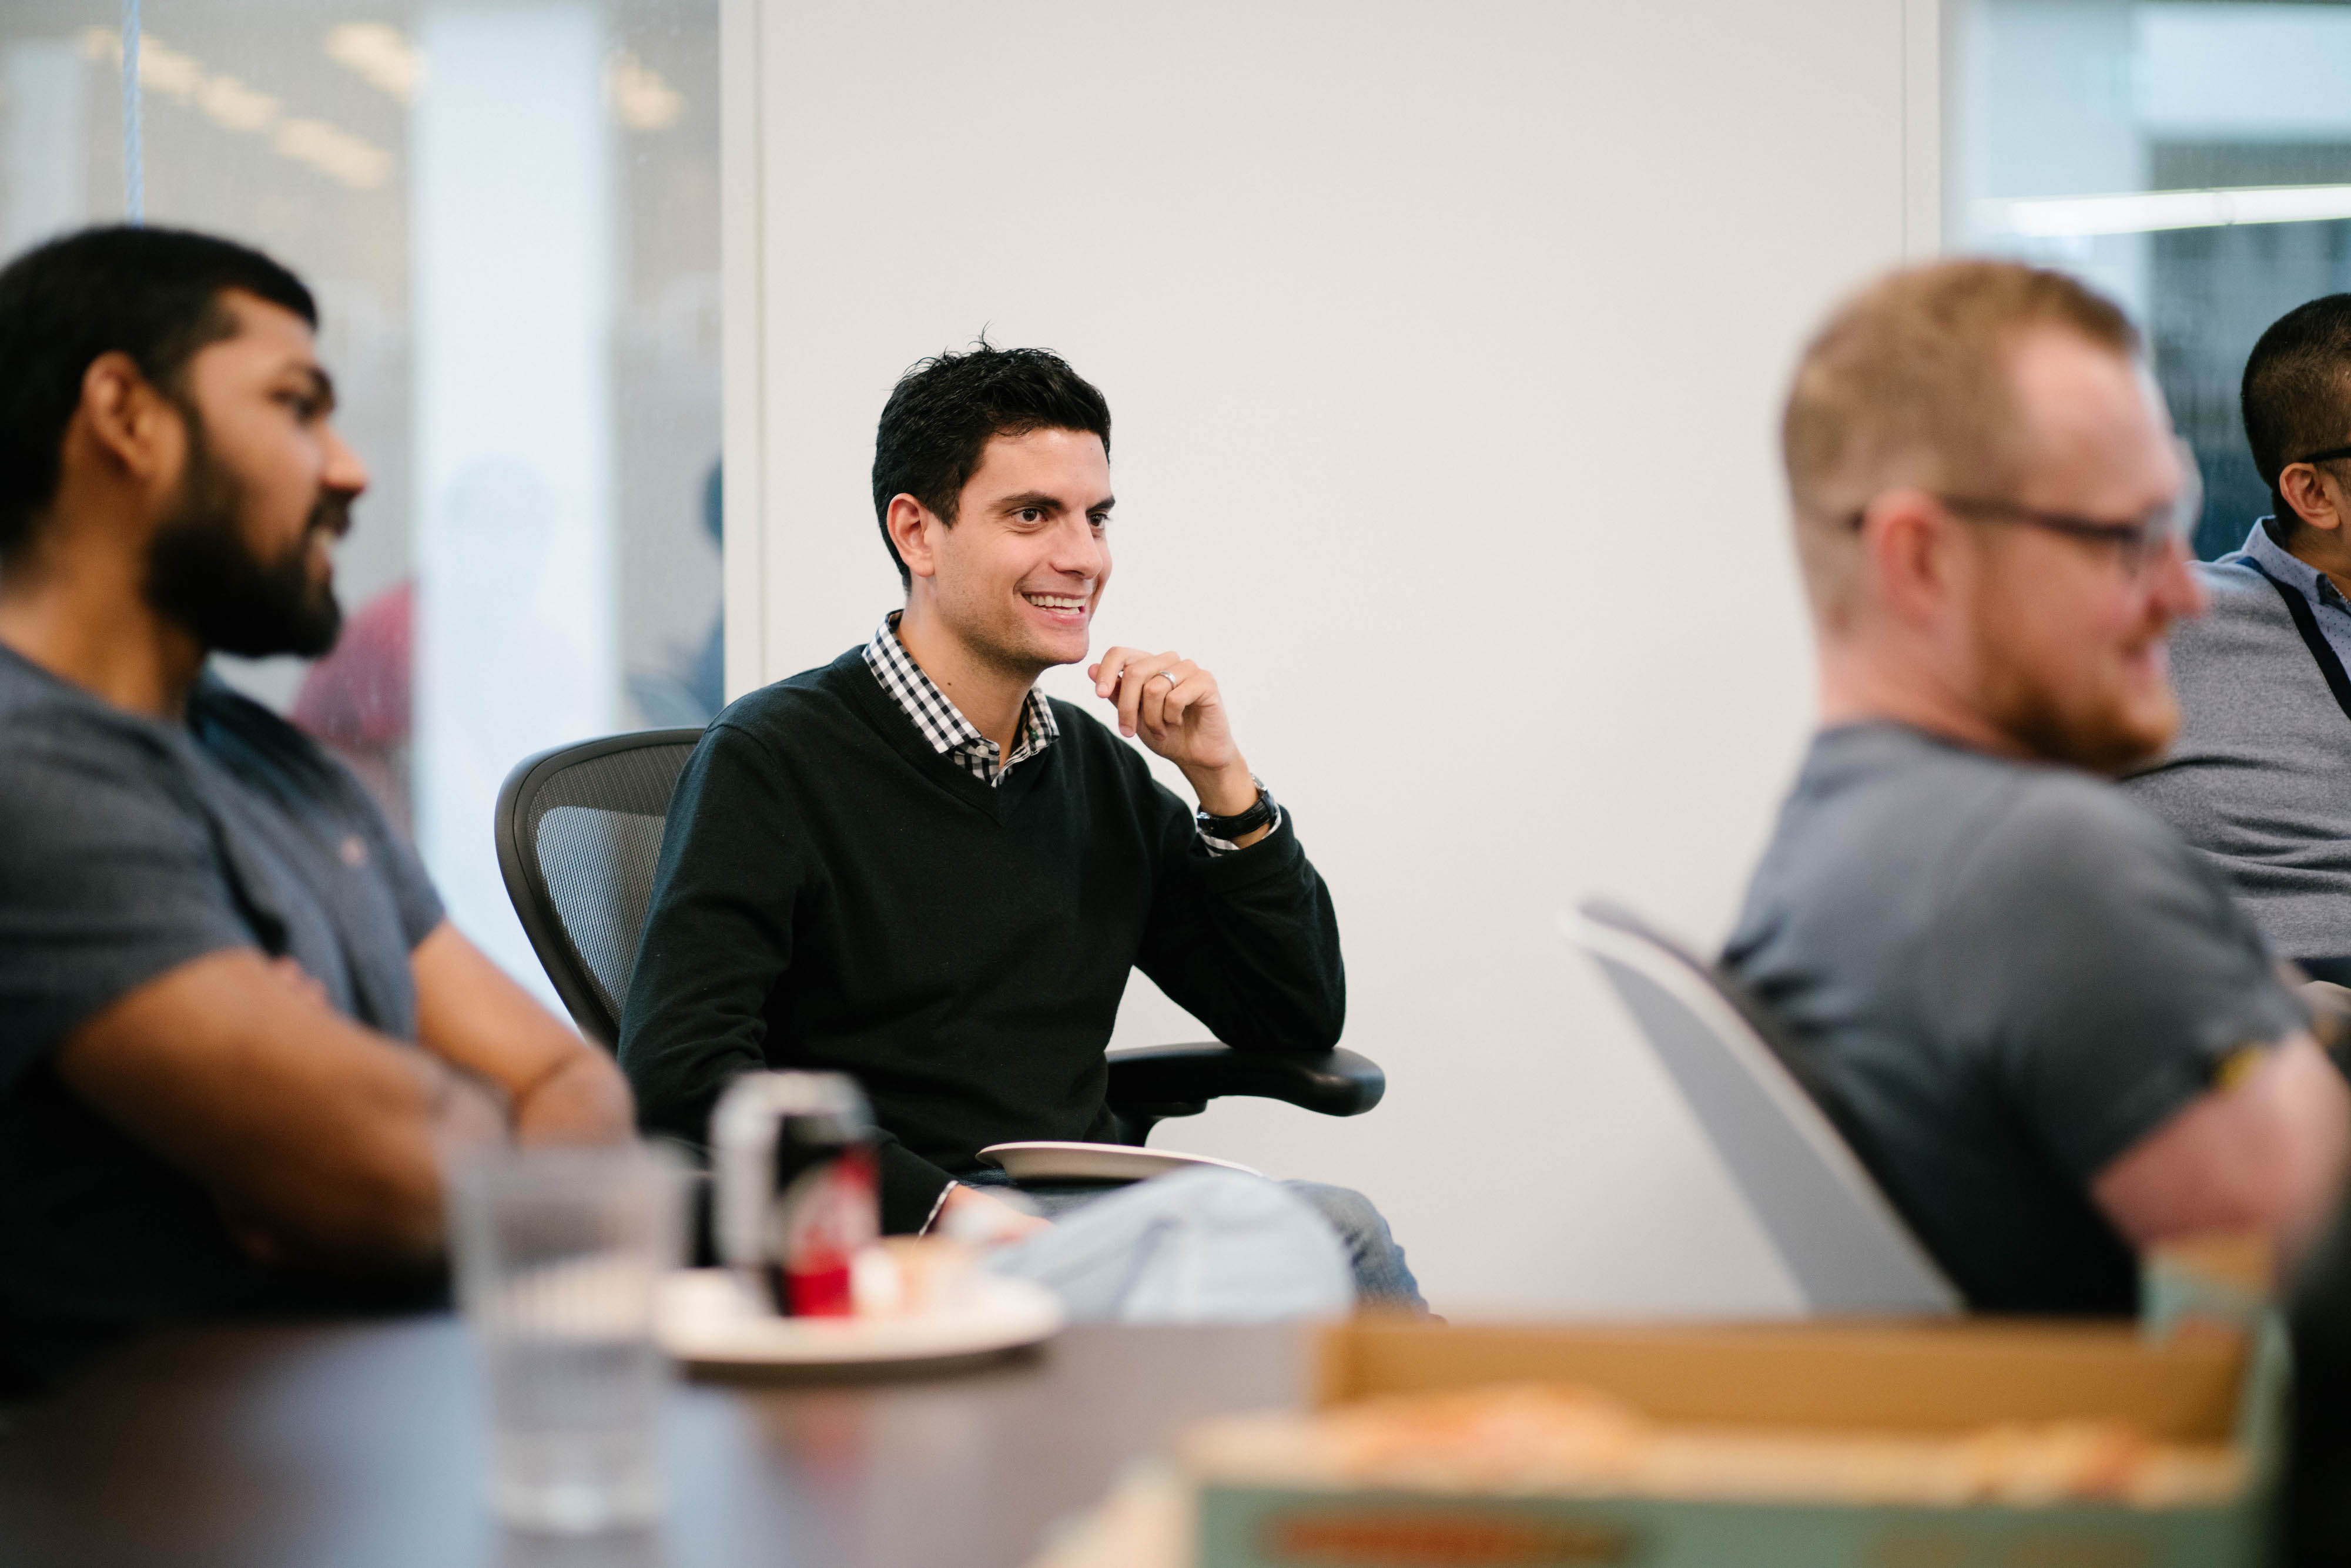 Smiling business man in the middle of meeting